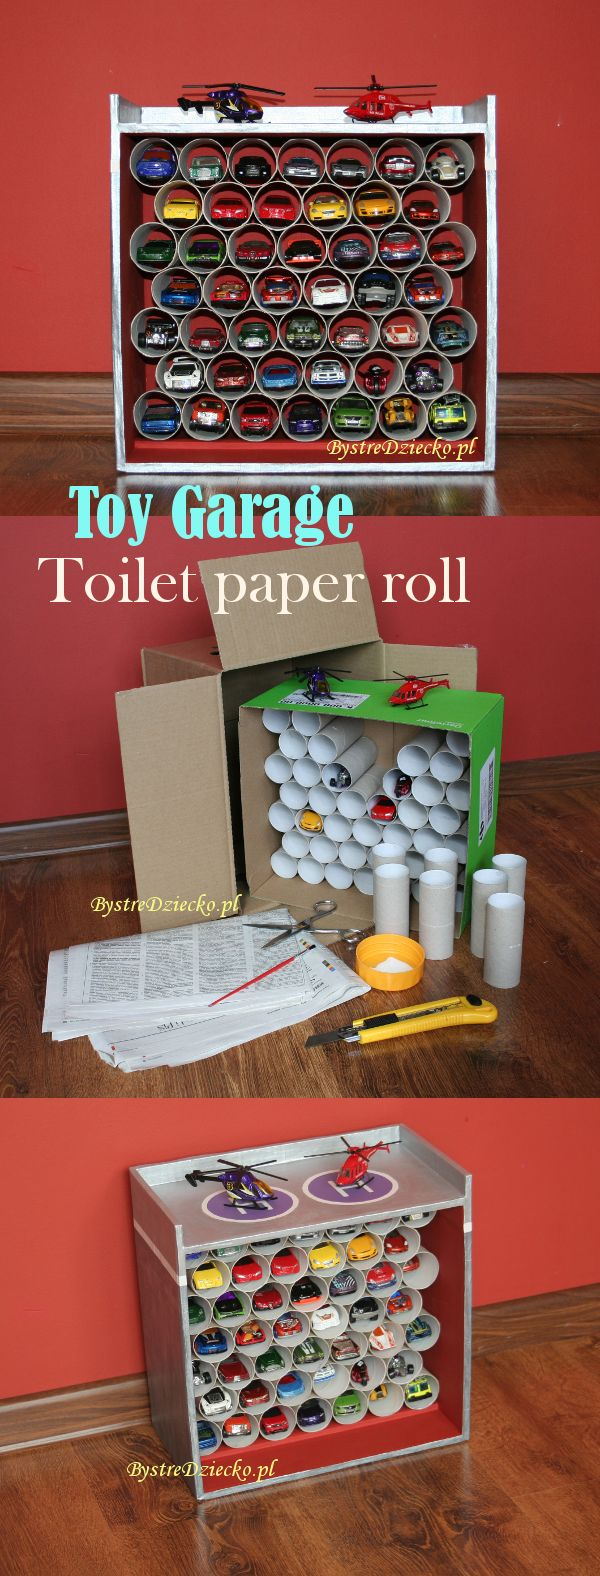 Car garage made from toilet rolls and